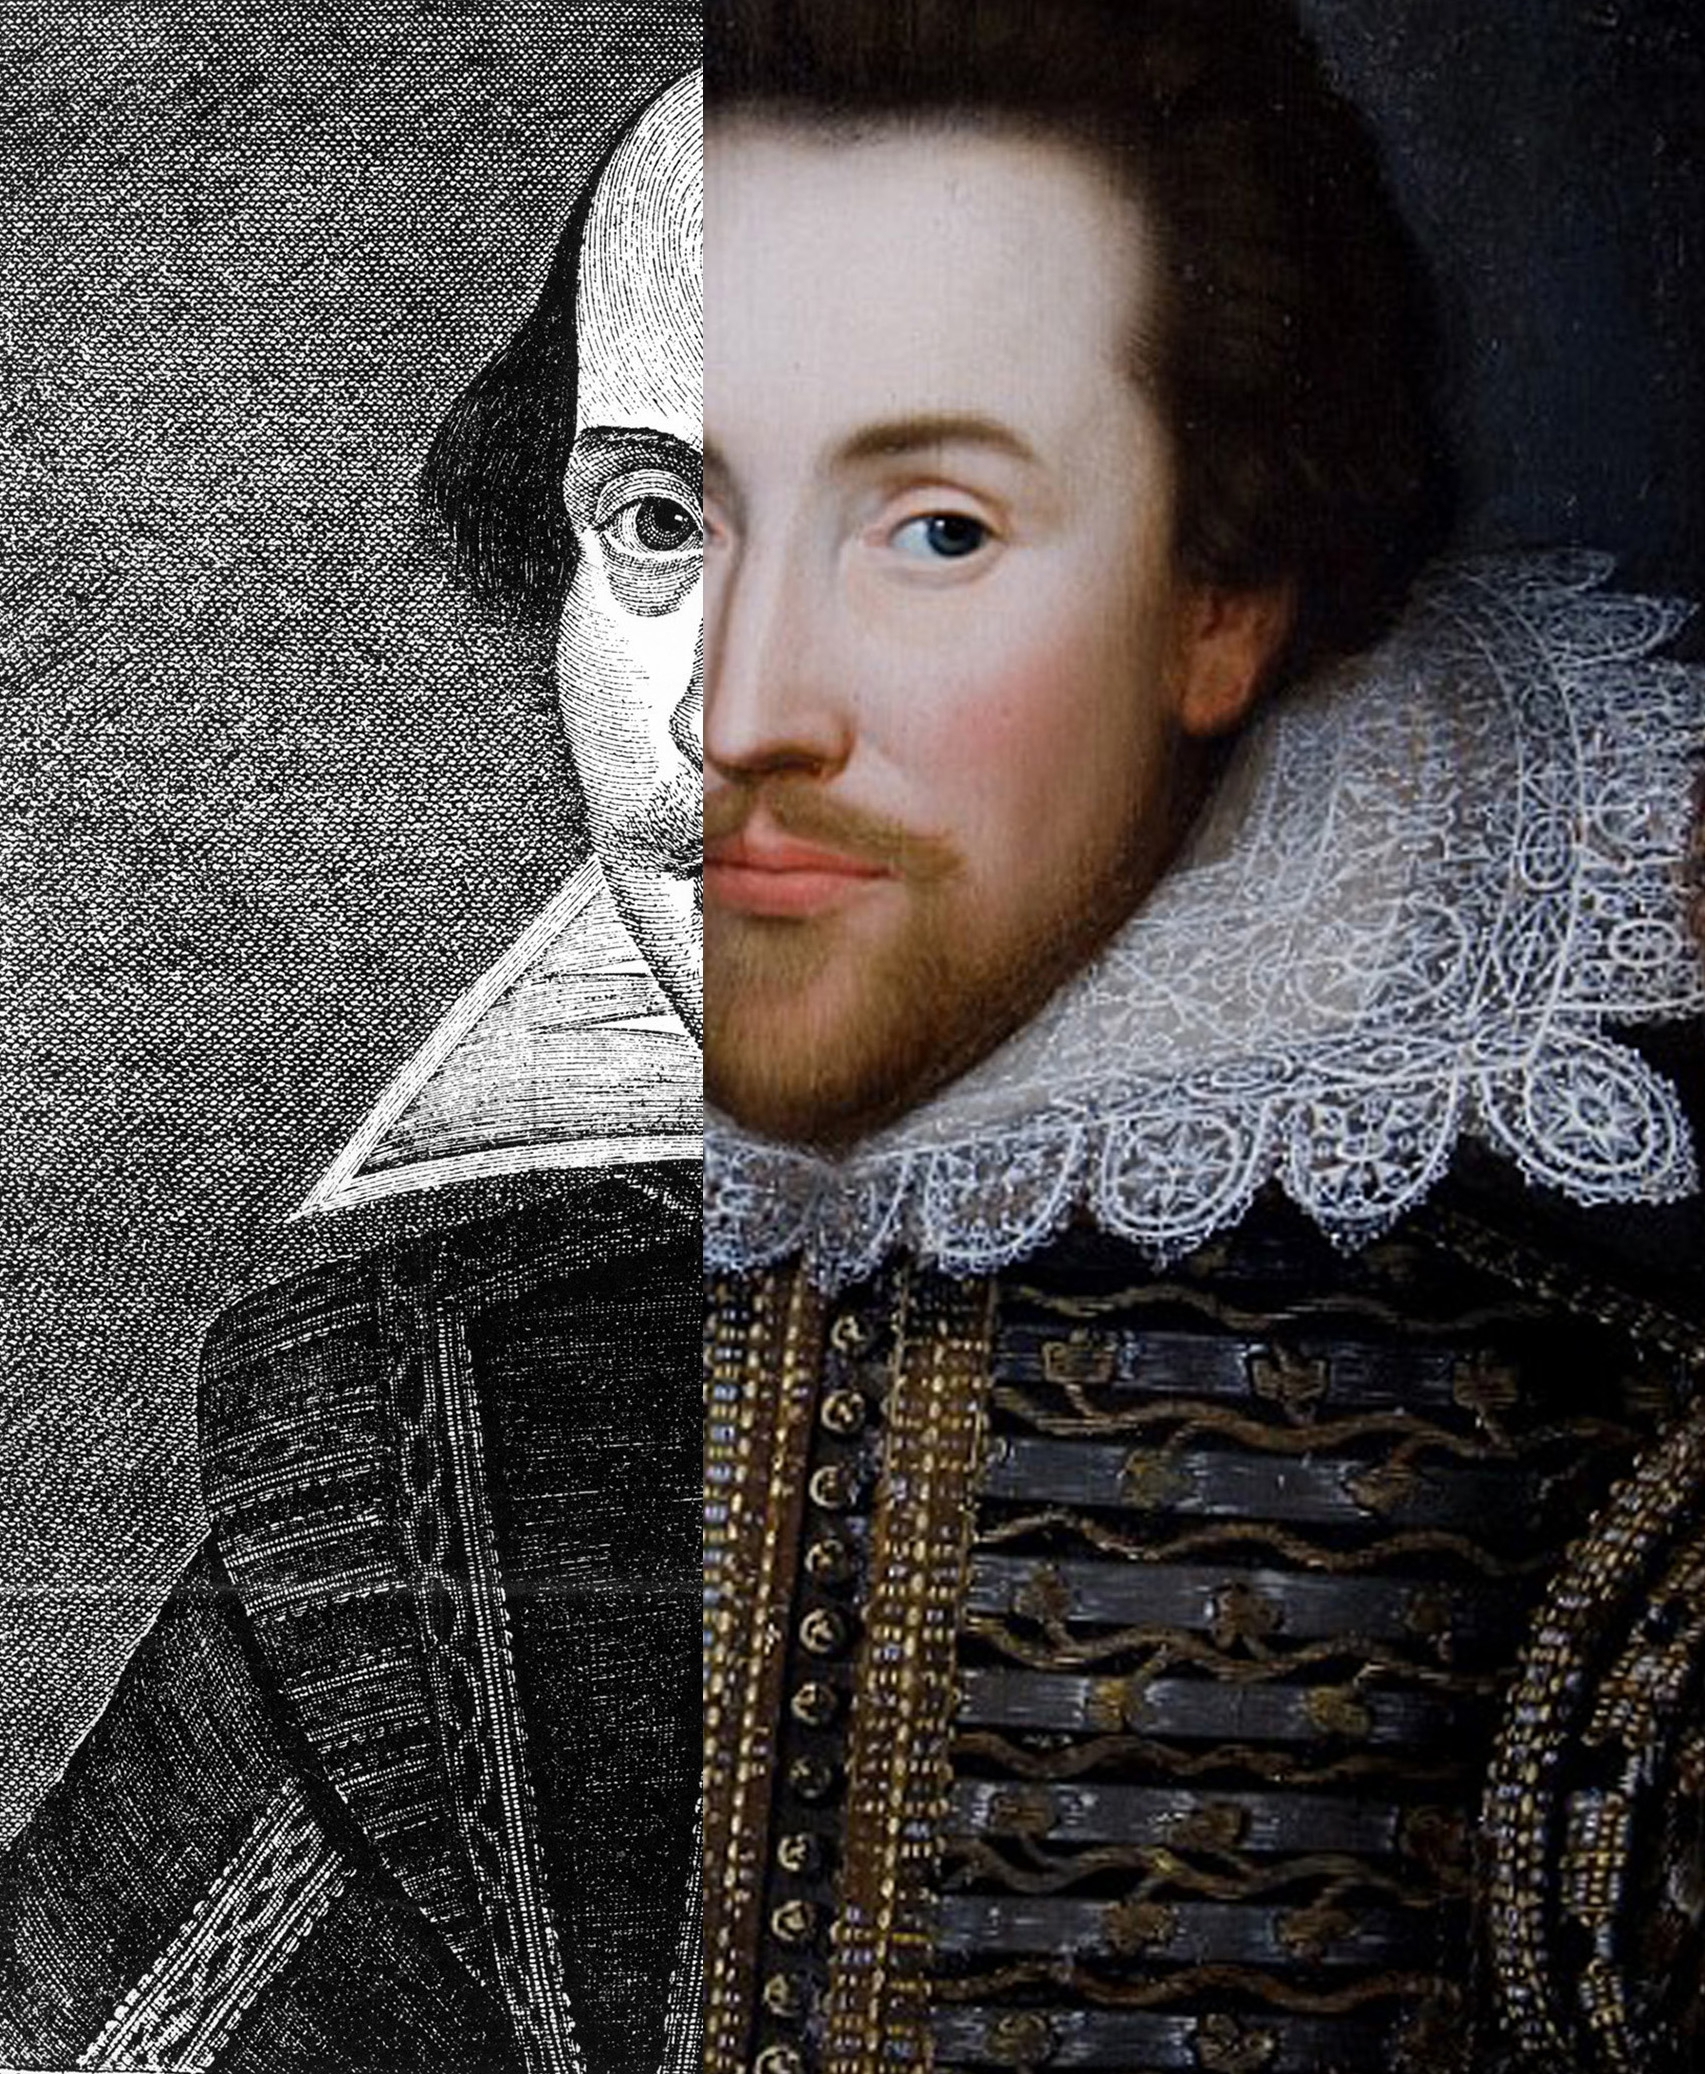 The cobbe portrait is not a genuine likeness of william shakespeare